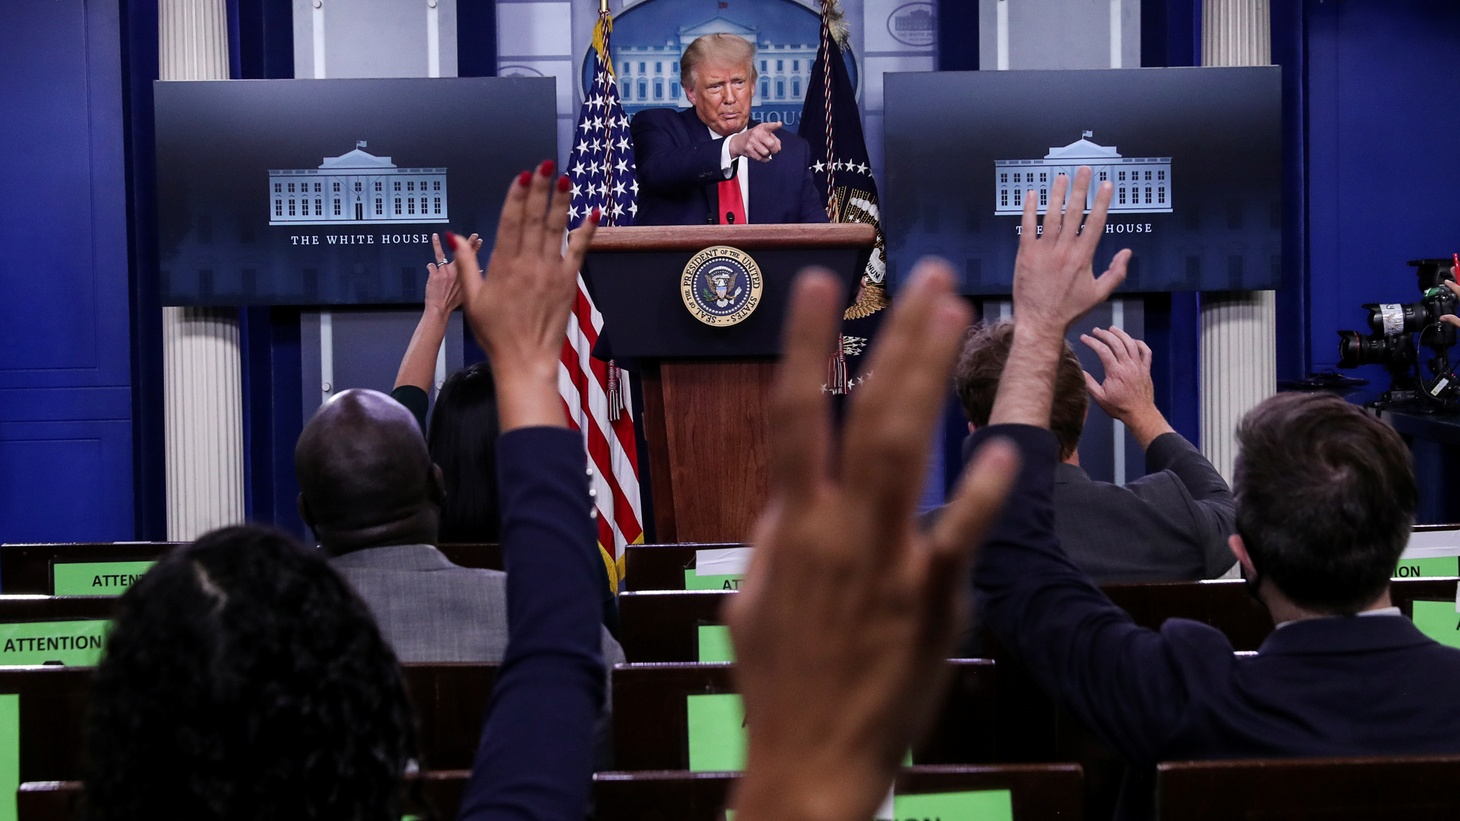 U.S. President Donald Trump takes questions during a news conference in the Brady Press Briefing Room at the White House in Washington, U.S., September 16, 2020.